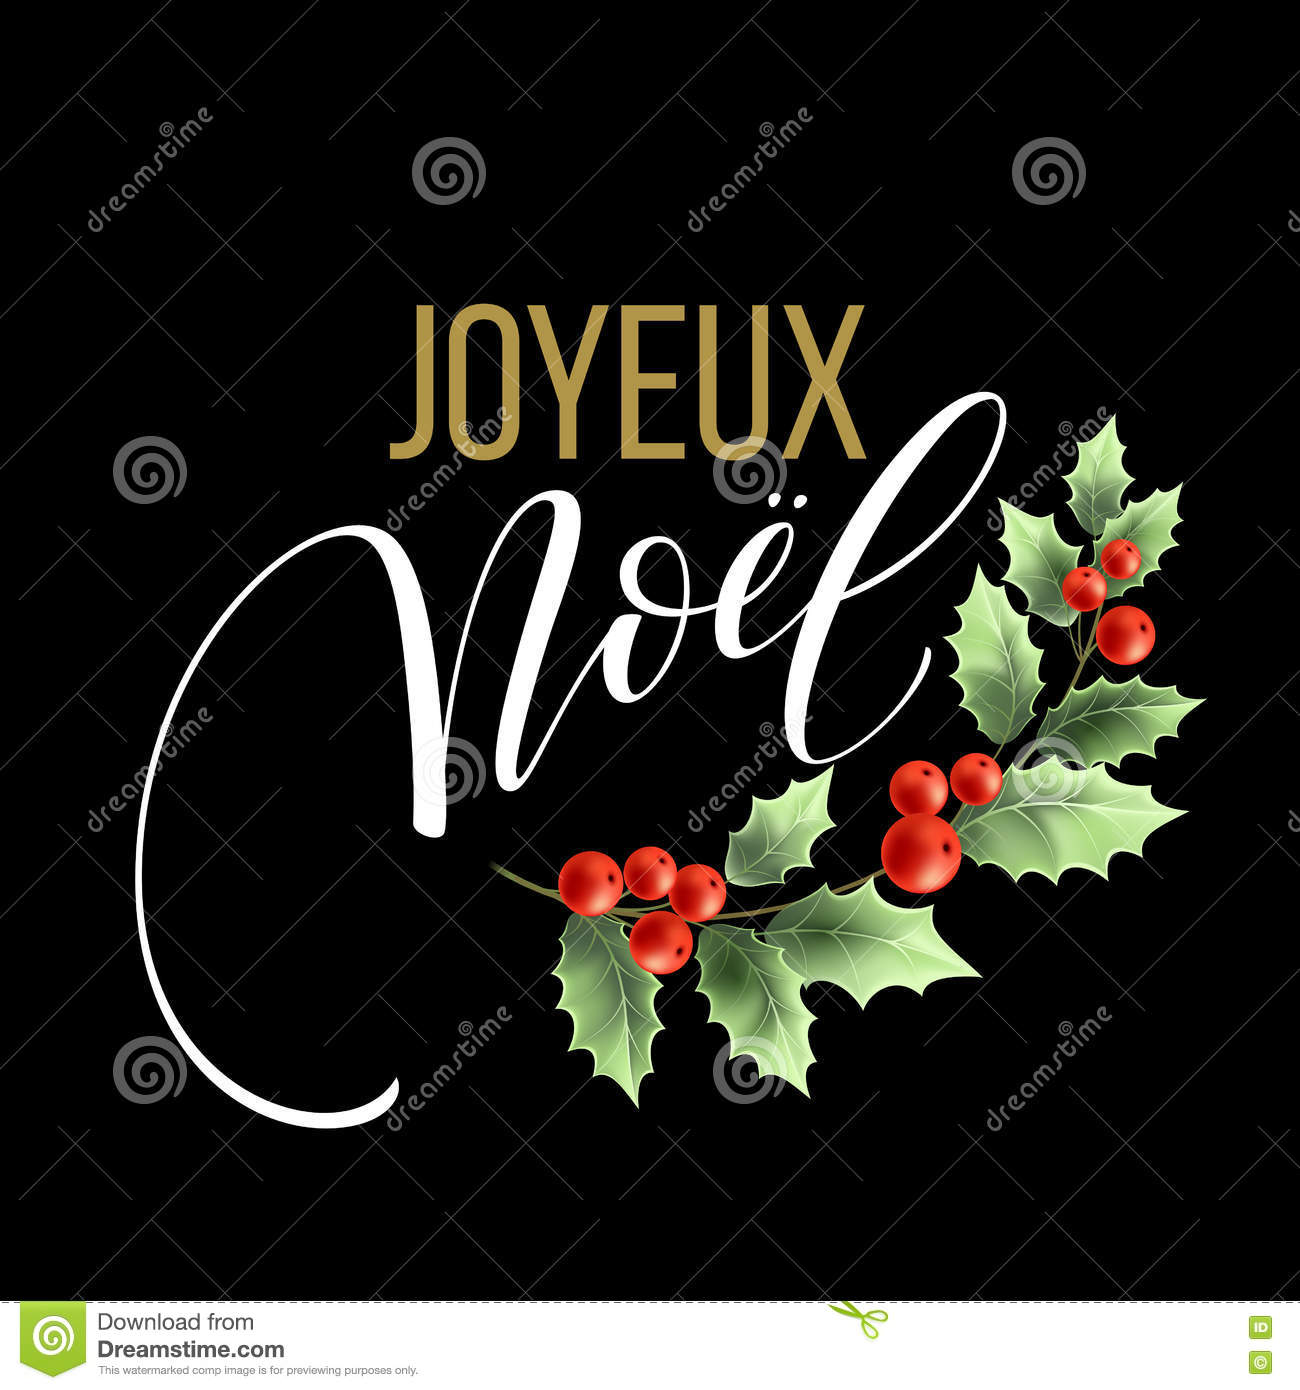 download merry christmas card template with greetings in french language joyeux noel vector illustration